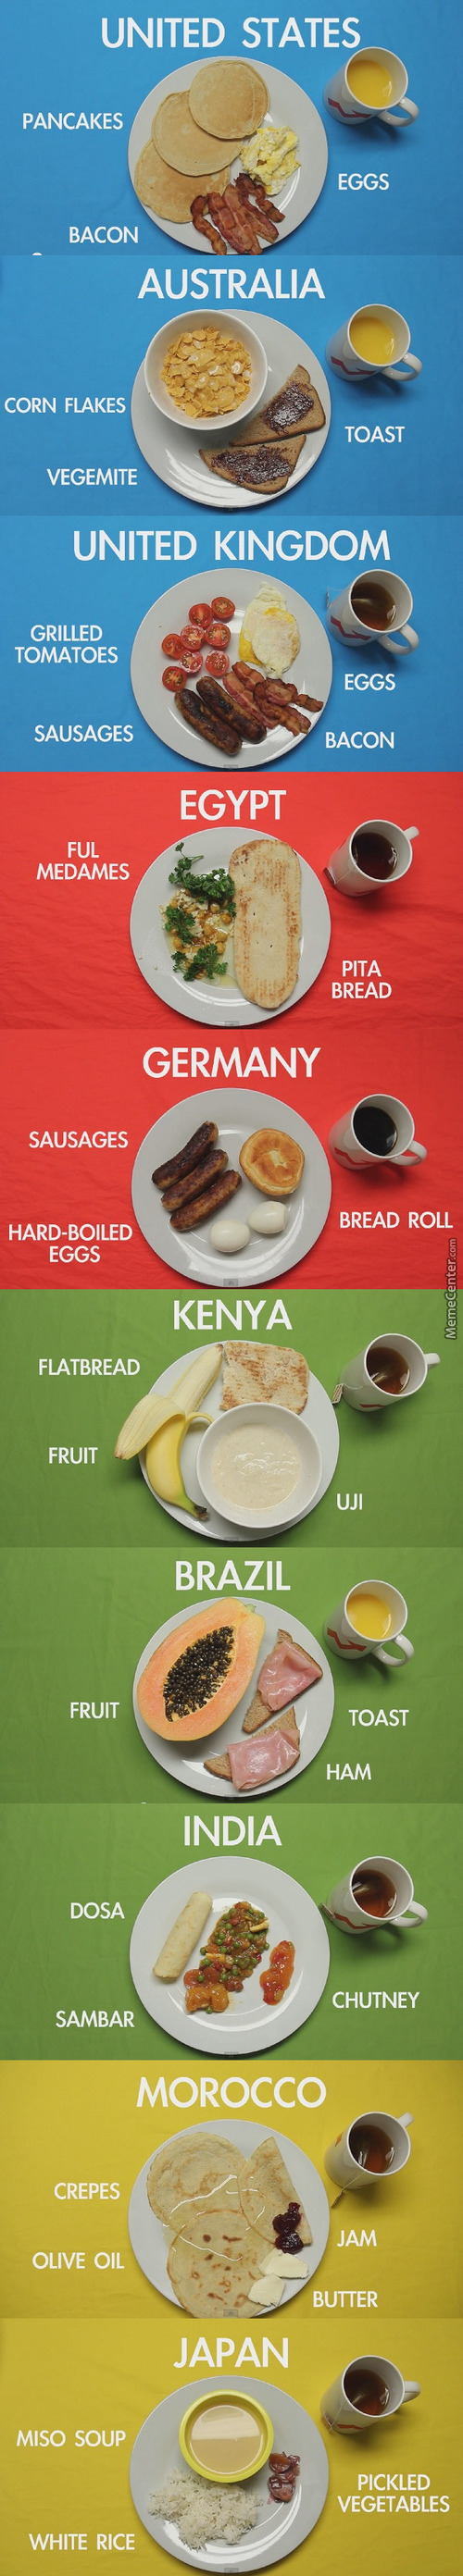 Breakfasts Of The World